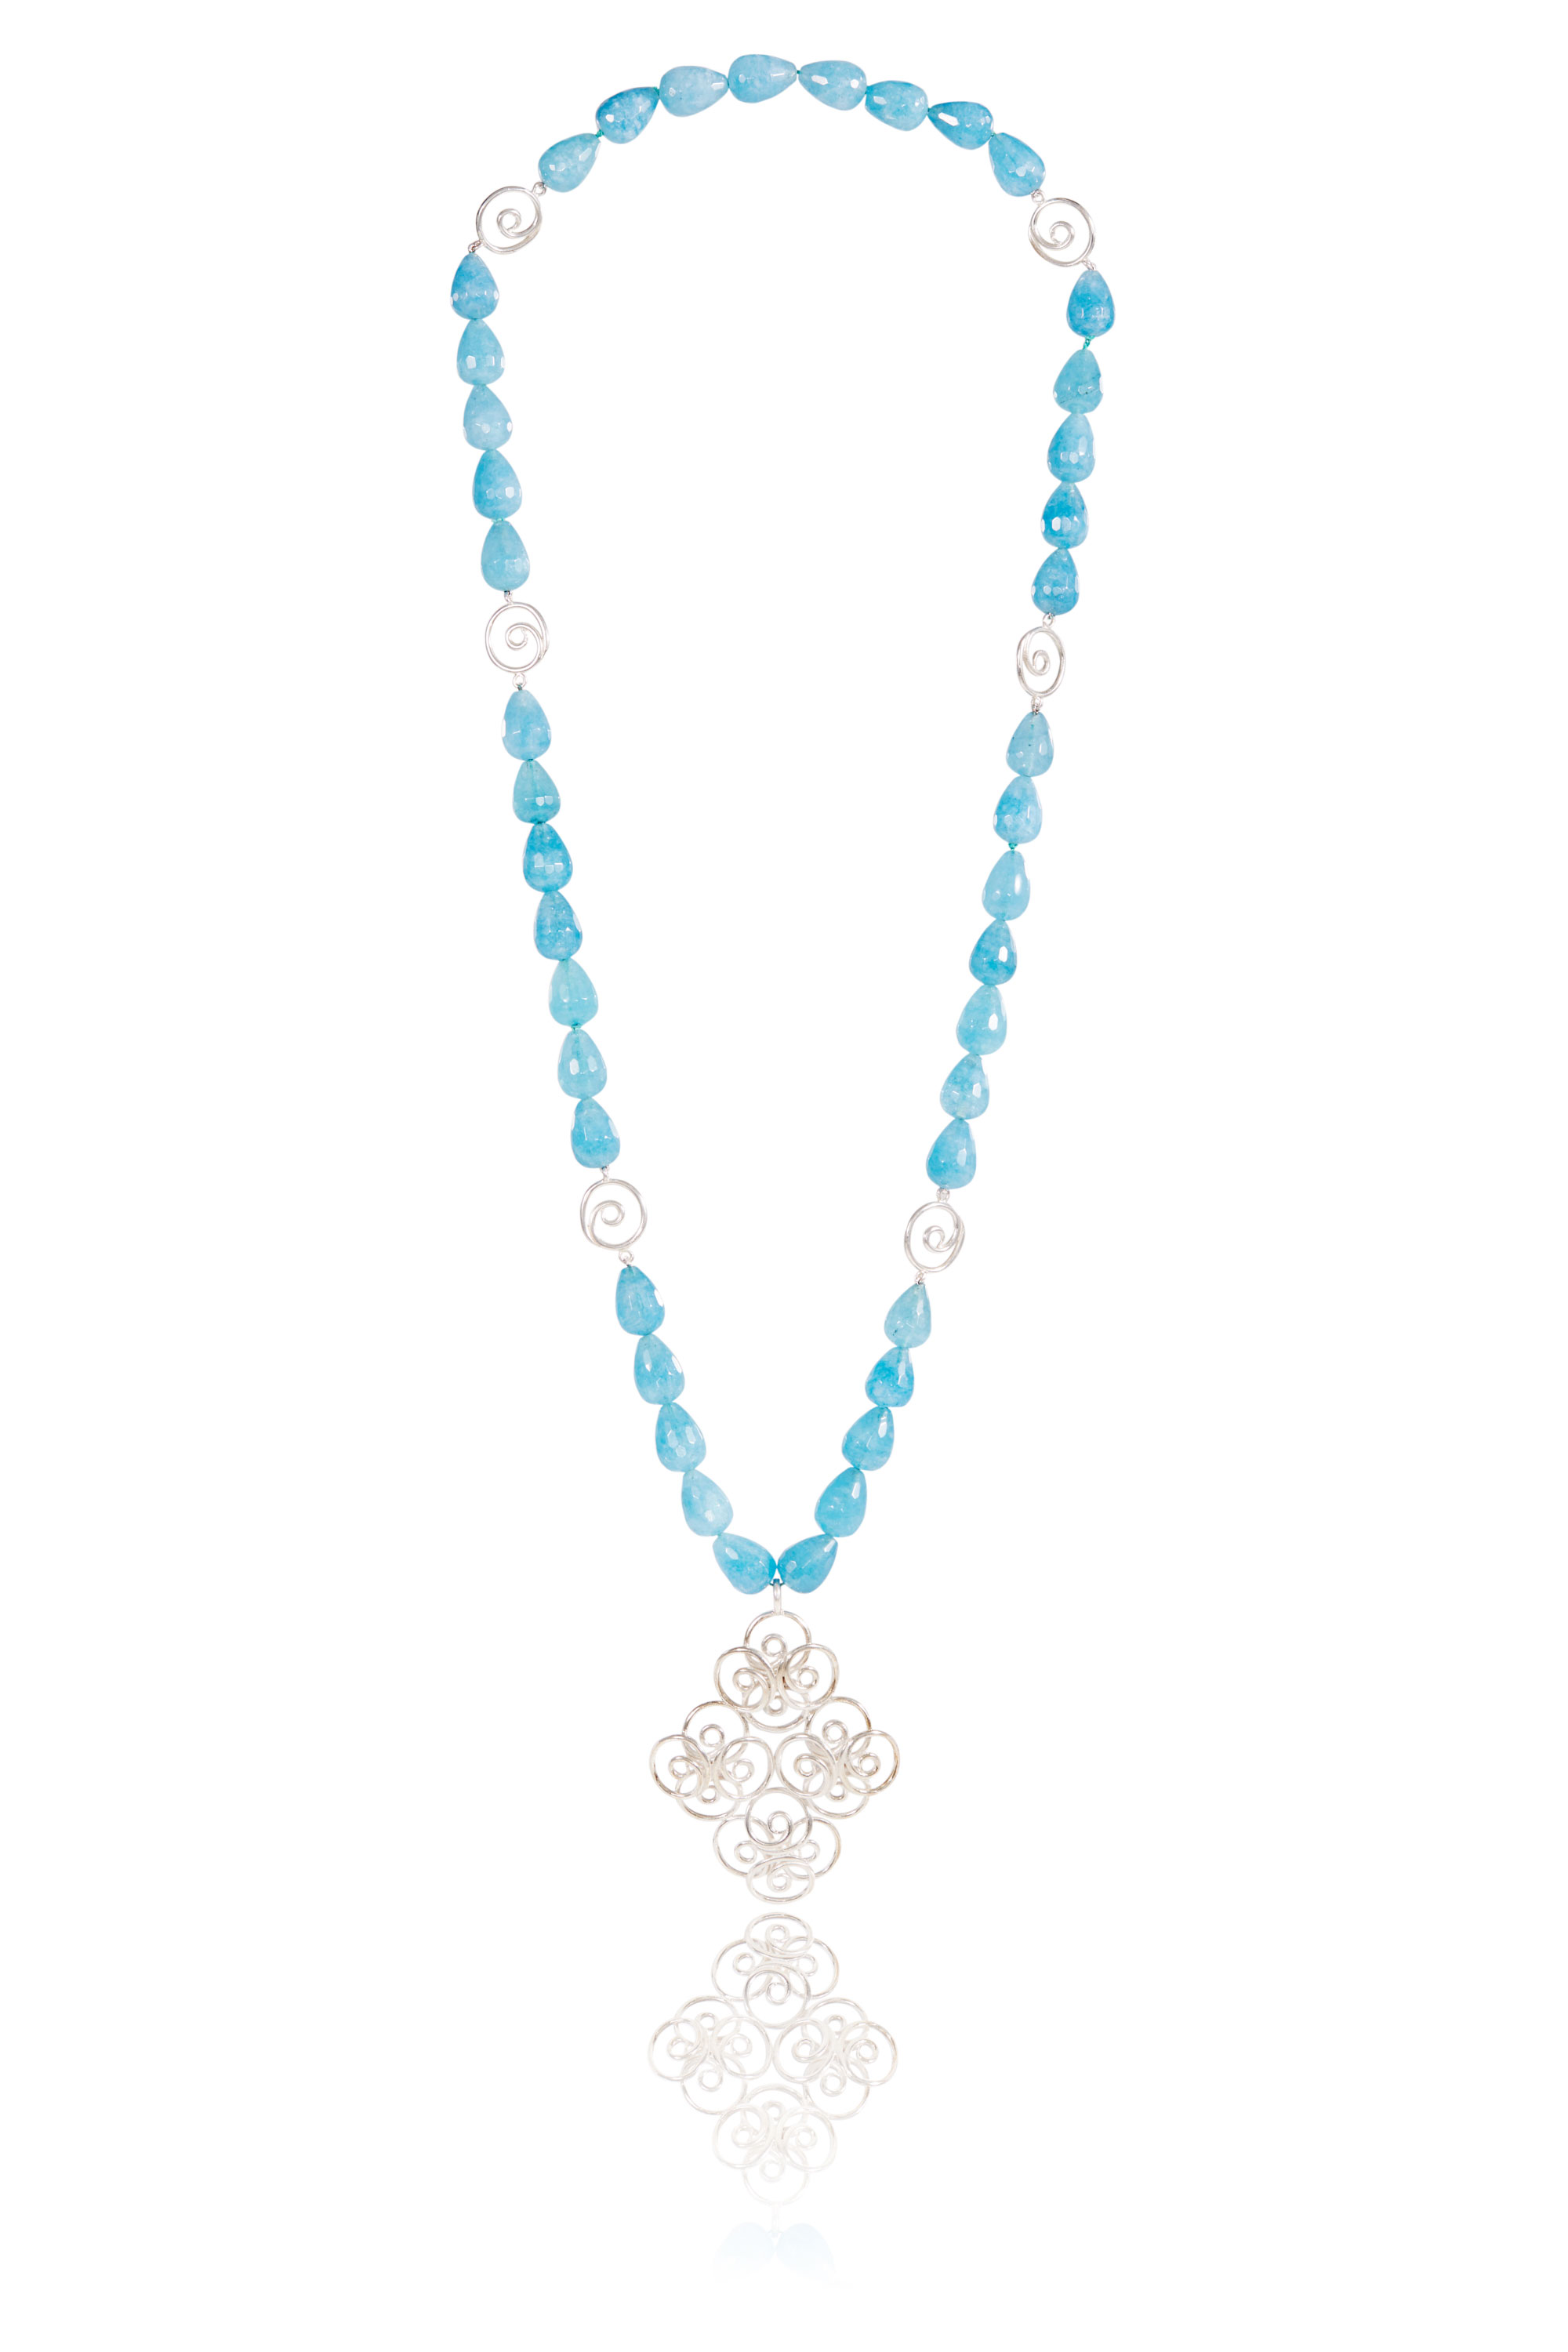 07_Silver_Filigree_Blue_Kyanite_Necklace_Low_Res_2000px_sRGB.jpg